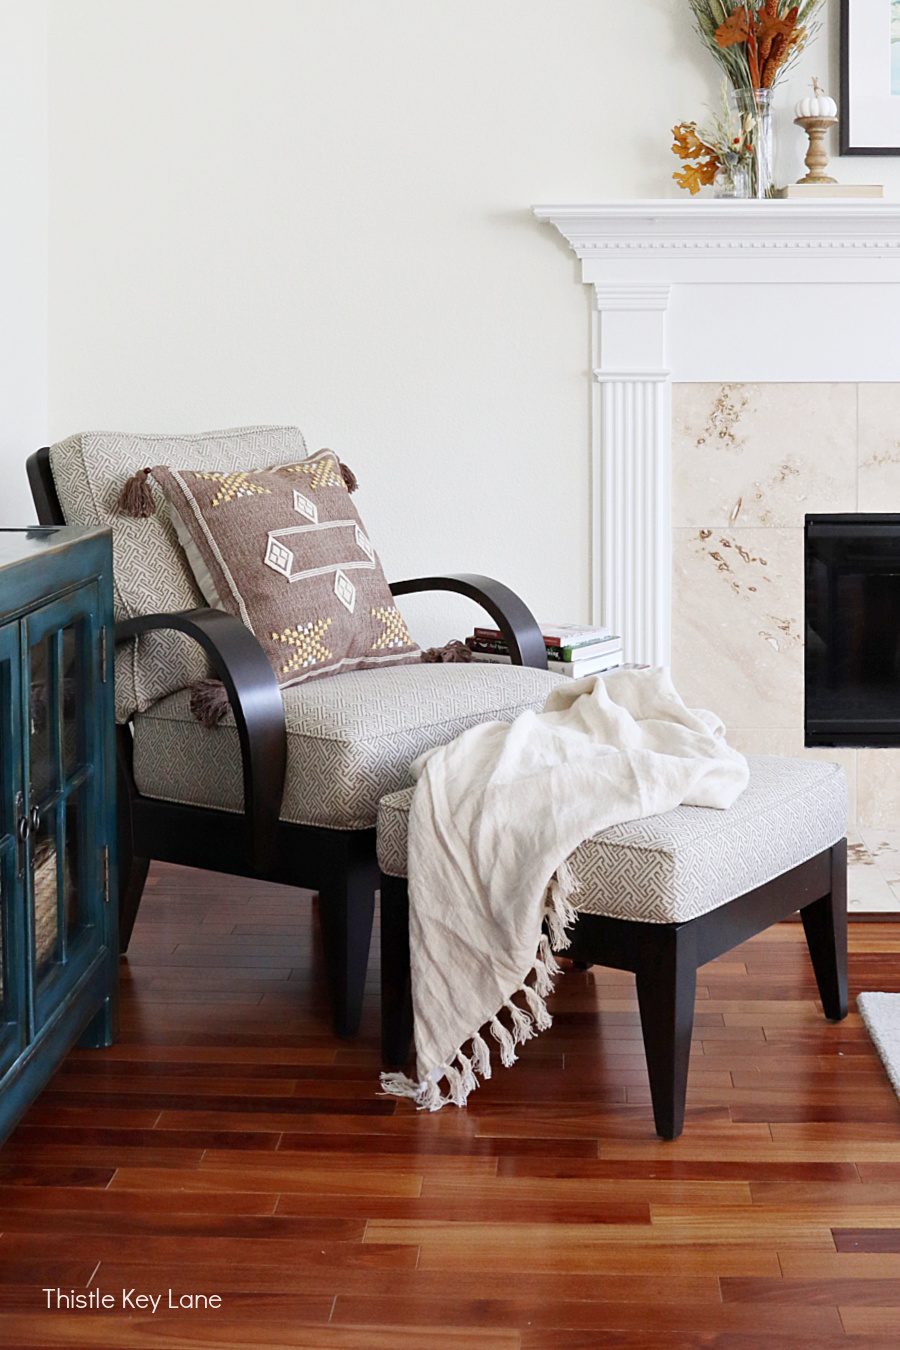 Arm chair and ottoman with pillow and throw. Fall Home Tour With Neutral Colors.